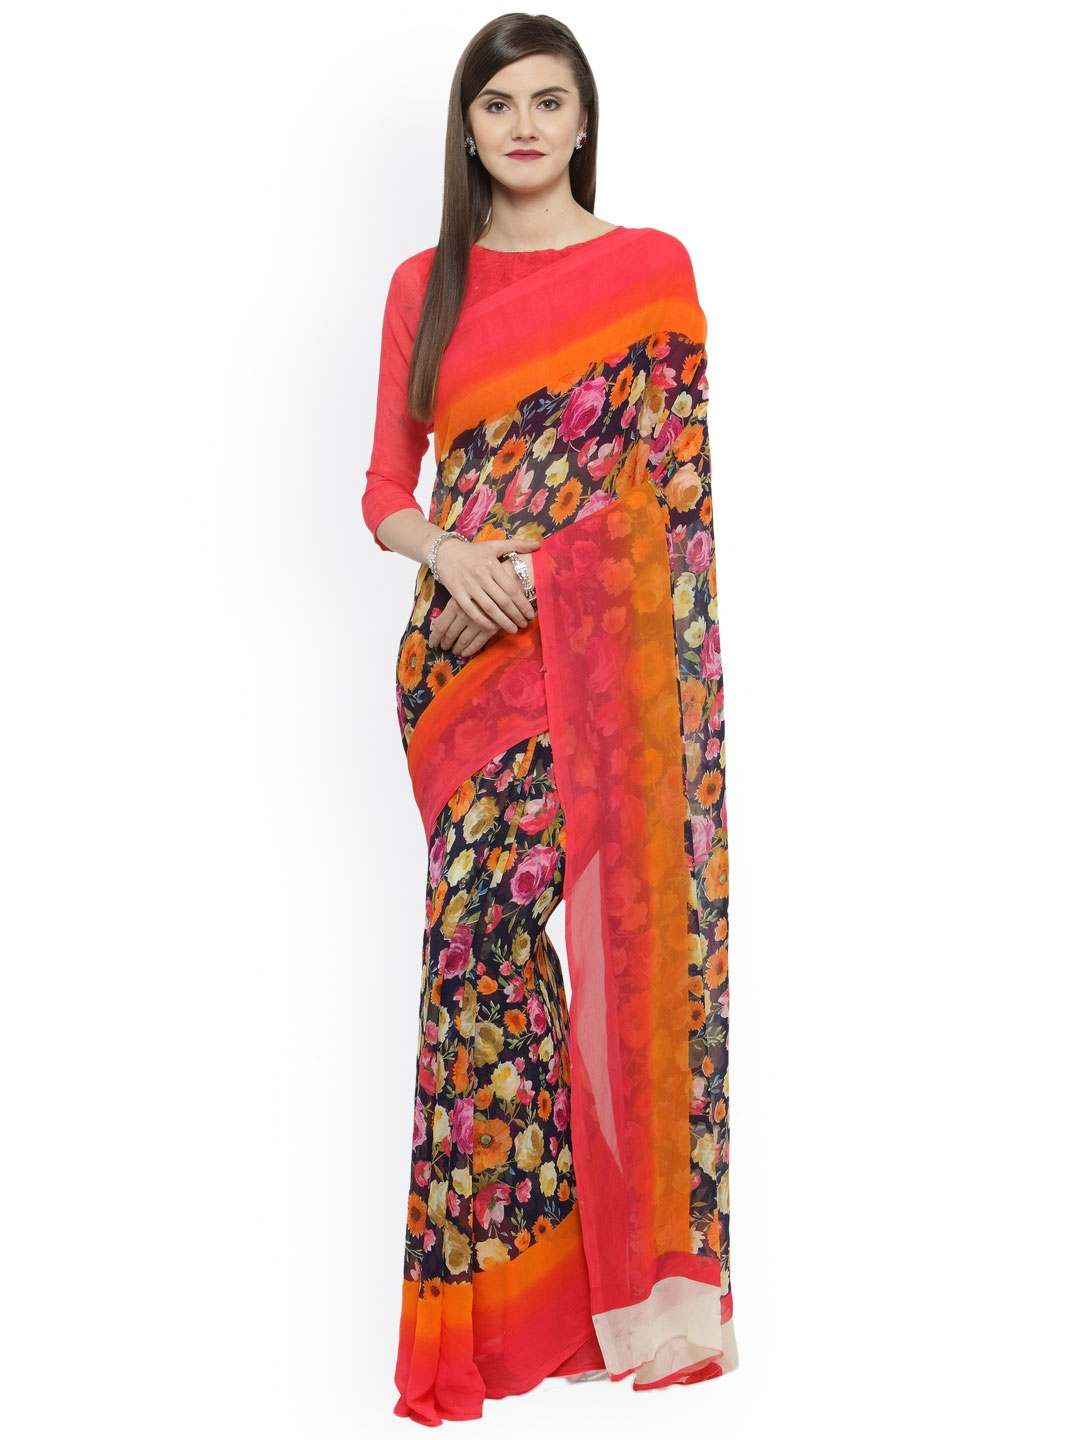 521116cfc62 Buy Shaily Pink   Orange Pure Georgette Printed Saree - Sarees for ...